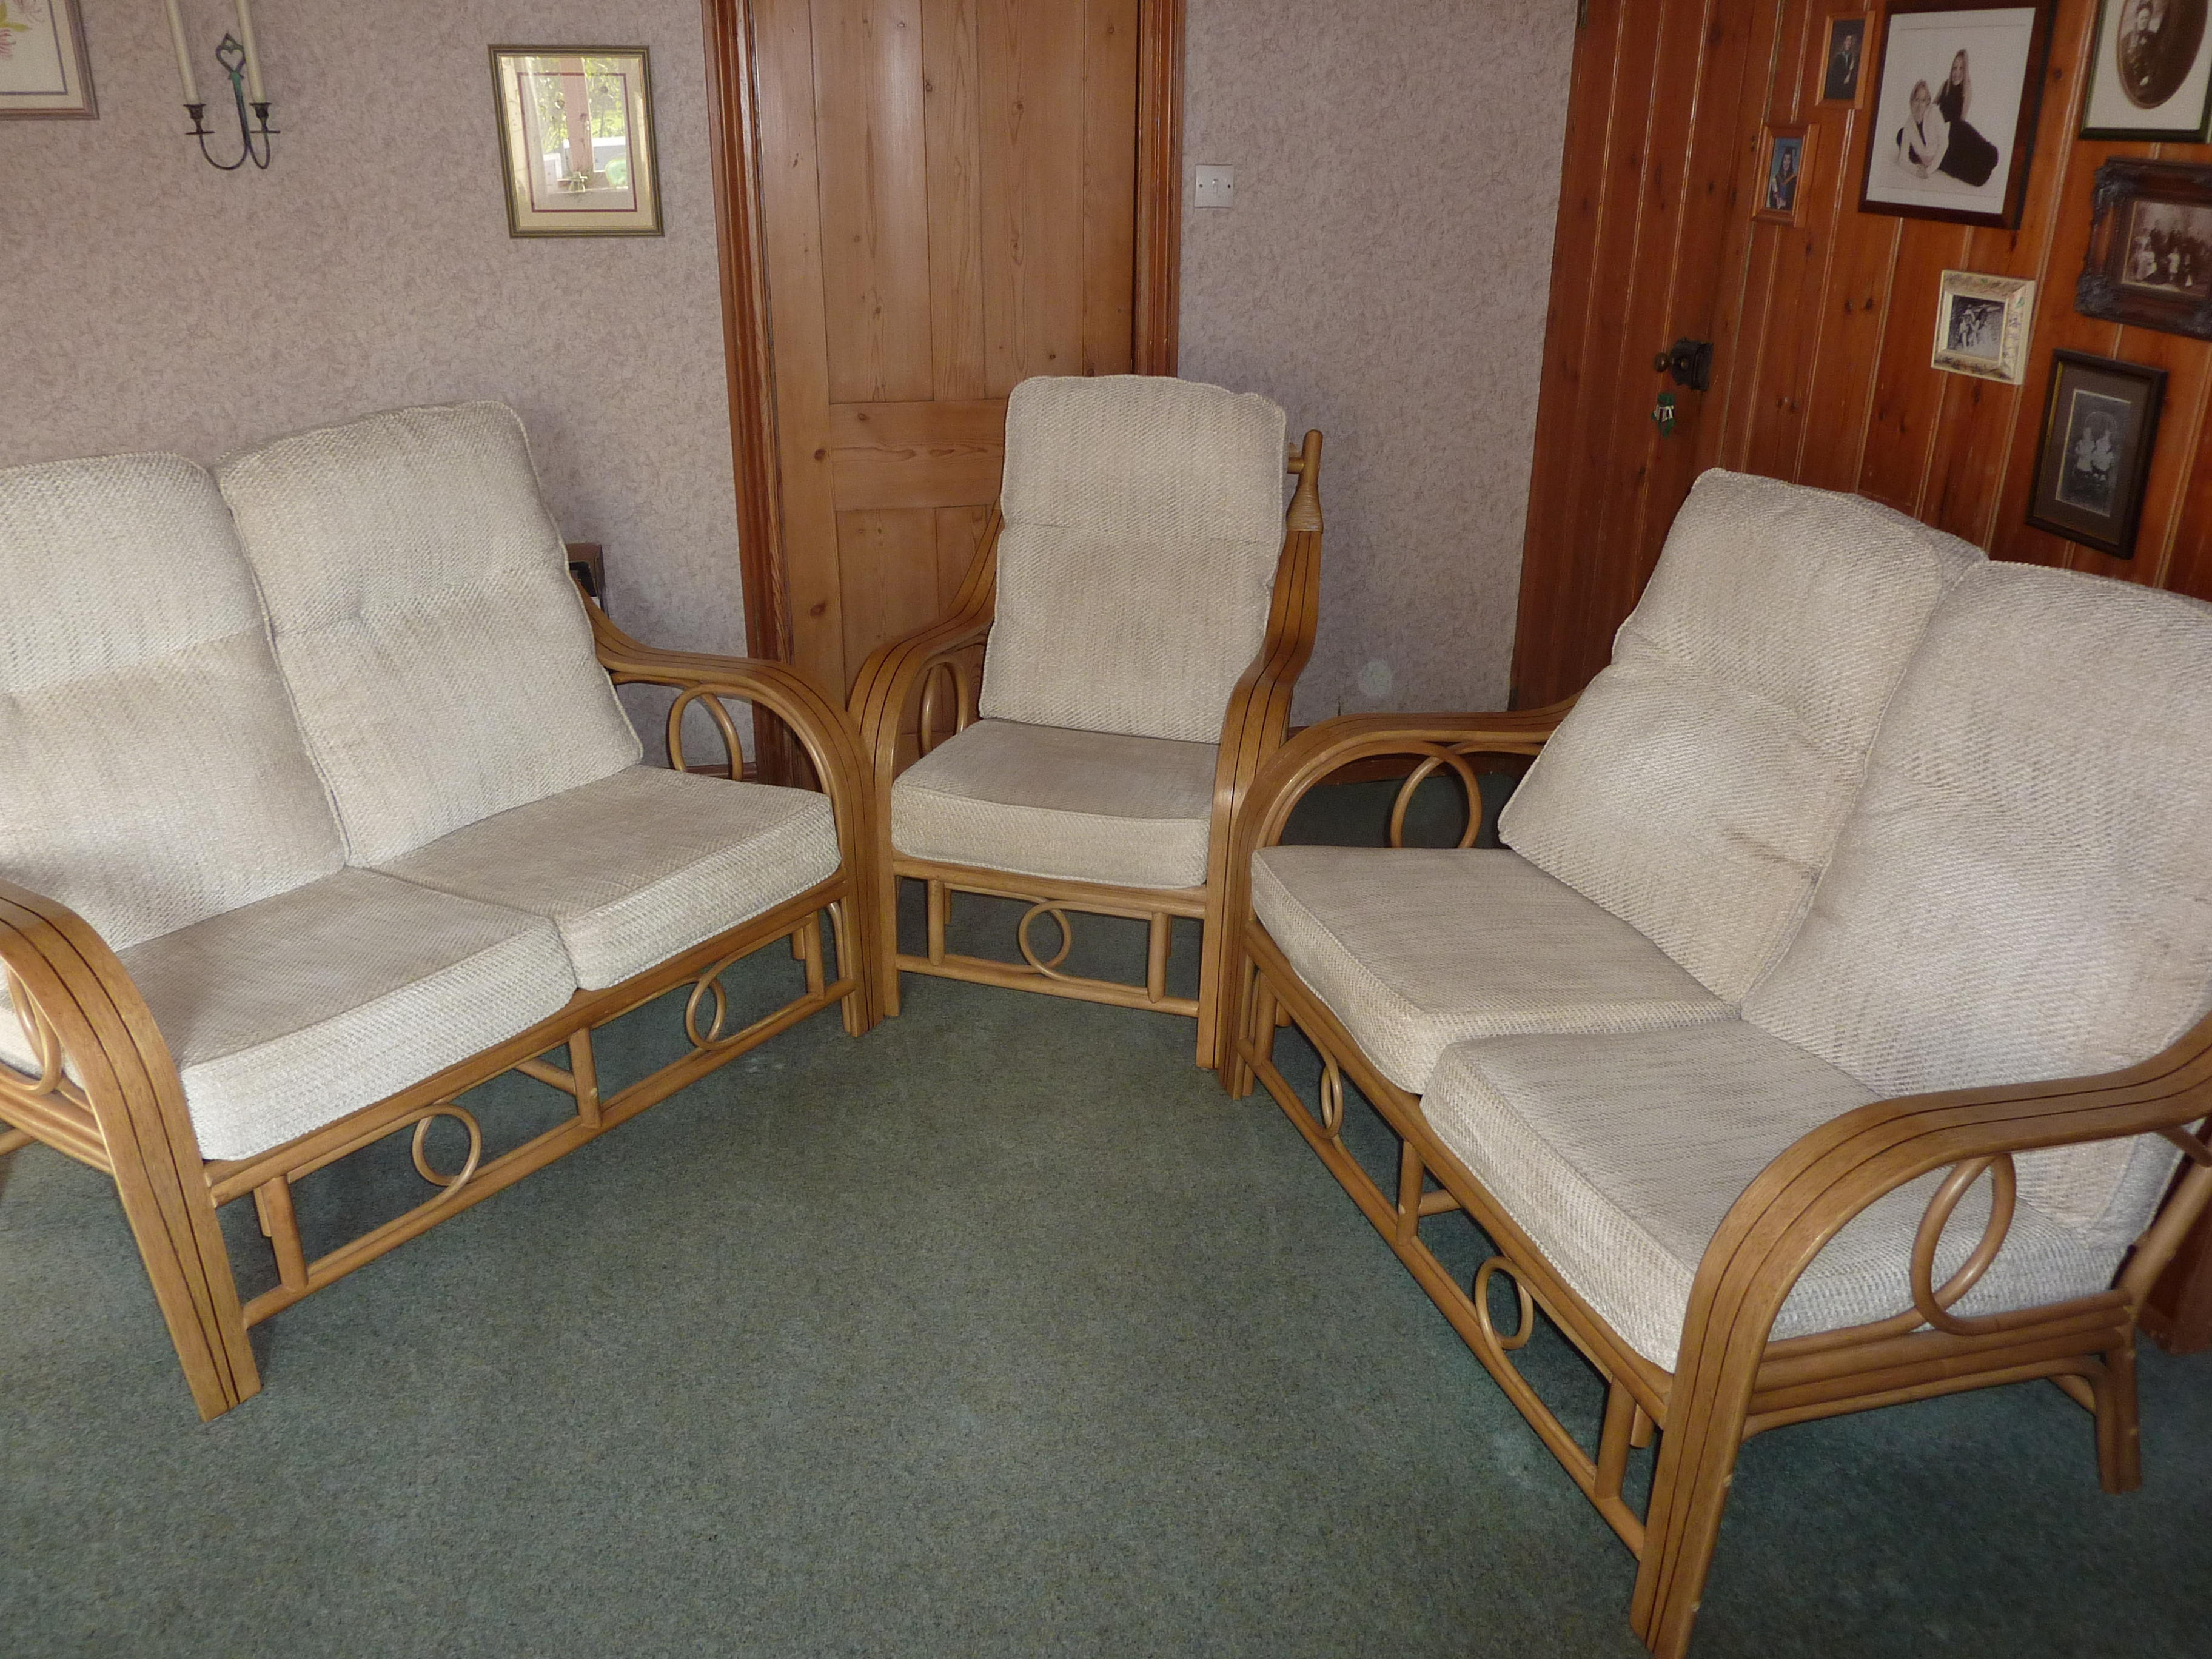 Cane sofas and chair